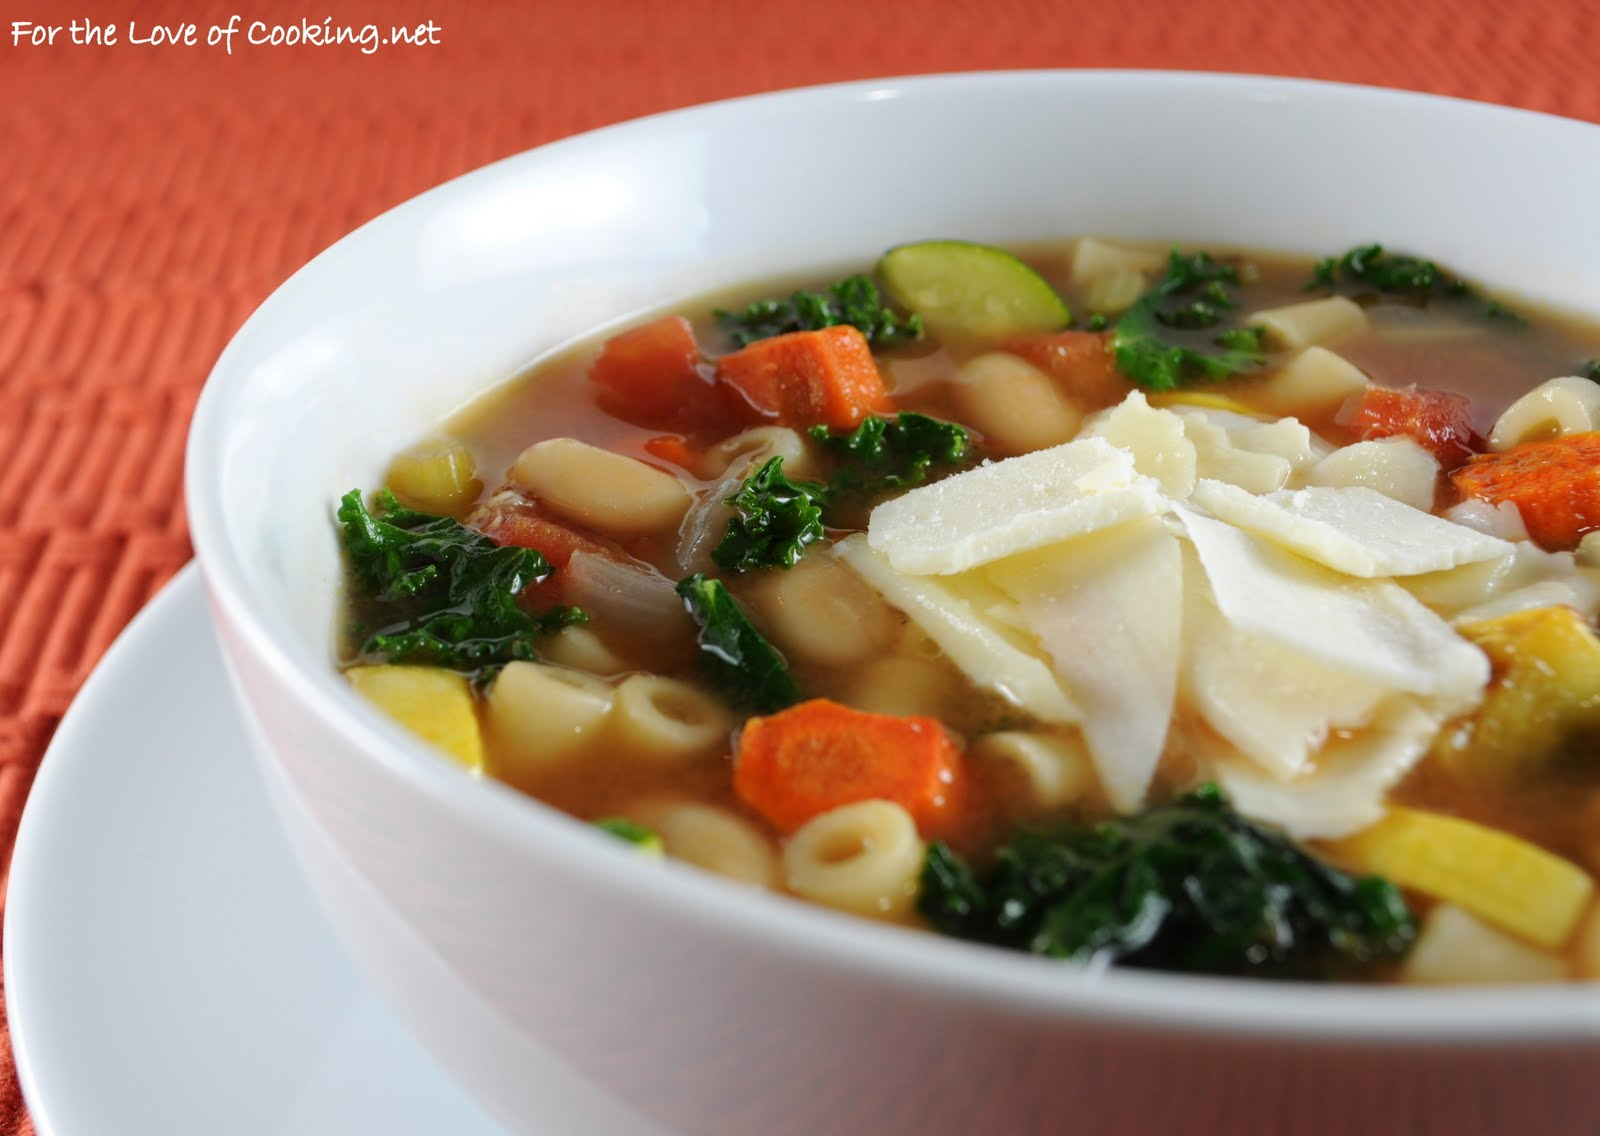 Roasted Vegetable Minestrone | For the Love of Cooking